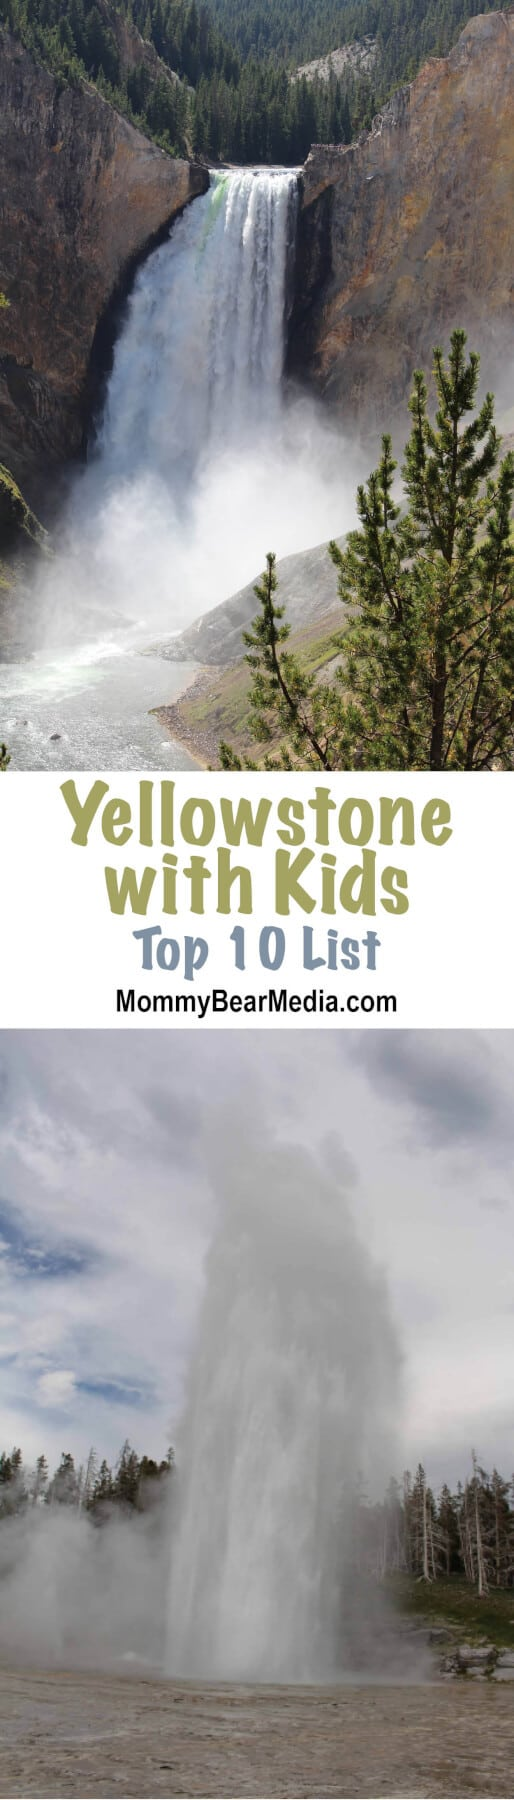 I pinned this so when we go to Yellowstone with kids someday, we can remember all these good places.